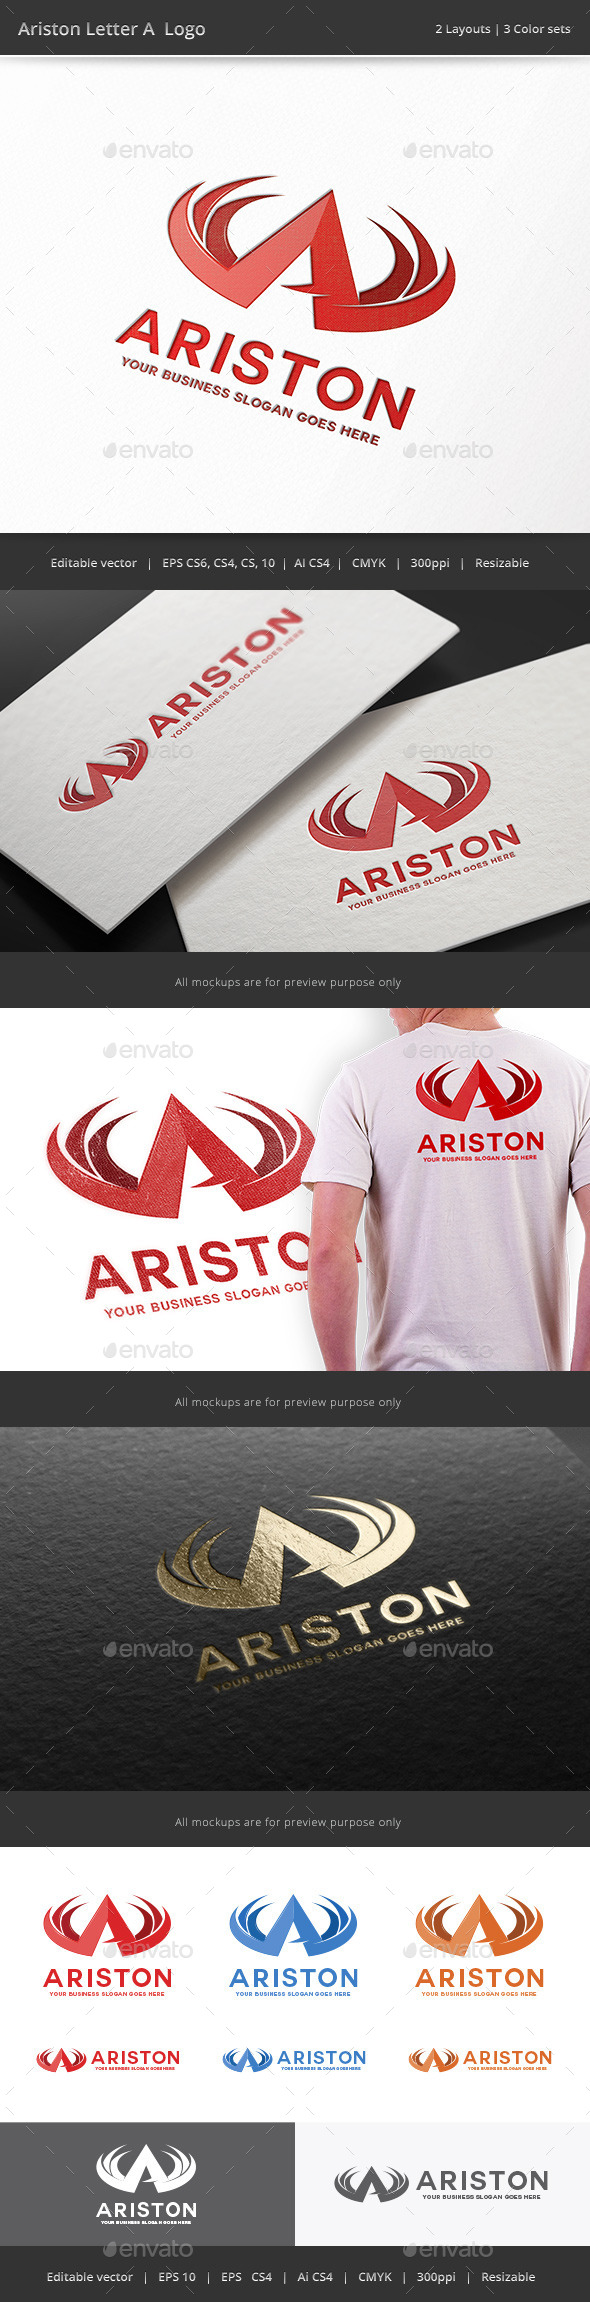 Ariston Letter A Logo - Letters Logo Templates